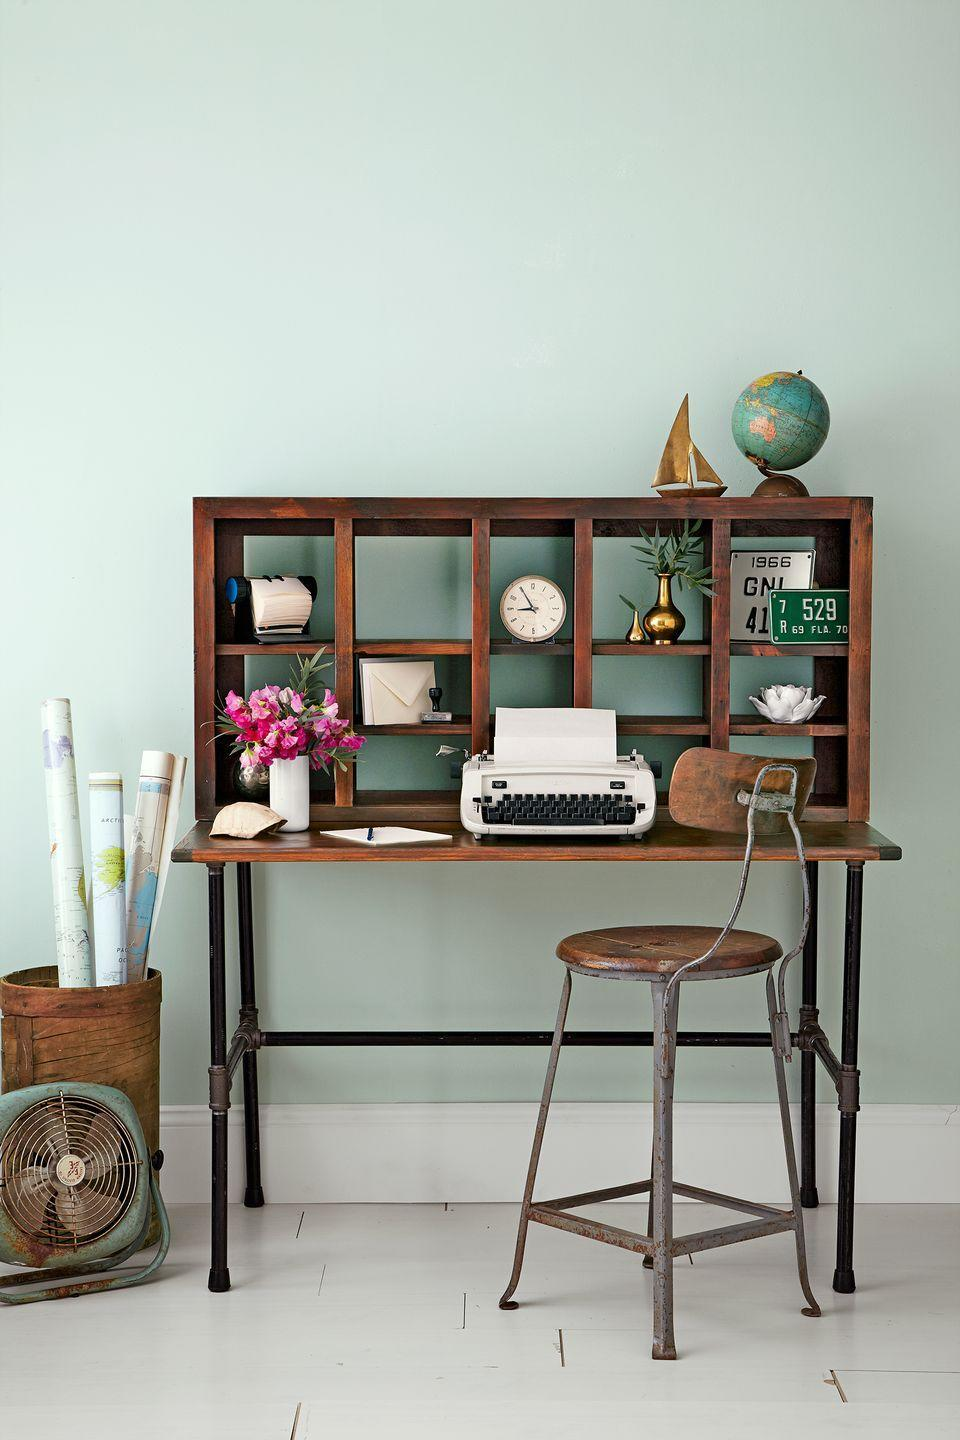 <p>Stack a shoe cubby or DIY floating shelf unit on top of a console table to give it the added perk of storage space. Not only does it look more visually interesting, it'll definitely help you stay organized. </p>